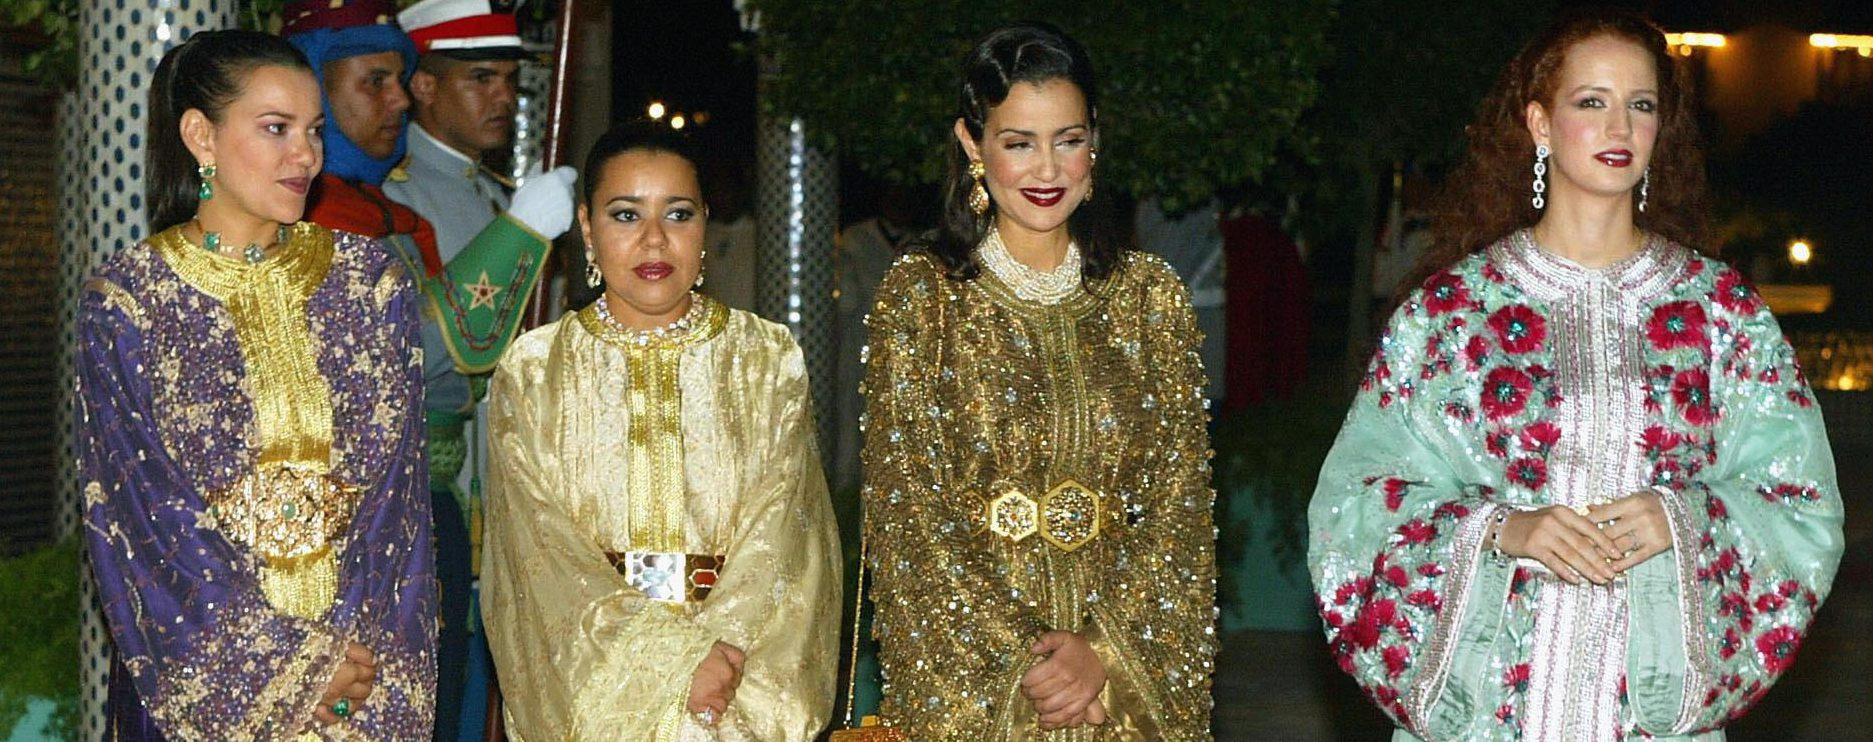 FEZ, MOROCCO: (L-R) Moroccan Princess Lalla Hasna (L), Princess Lalla Hasma, Princess Lalla Meriam and Princess Lalla Salma attend a dinner marking the state visit by French President Jacques Chirac at the Royal Palace, 09 October 2003 in Fez, Morocco. Chirac is on a three-day visit to the North African country. AFP PHOTO/POOL/Pascal Le Segretain (Photo credit should read PASCAL LE SEGRETAIN/AFP/Getty Images)